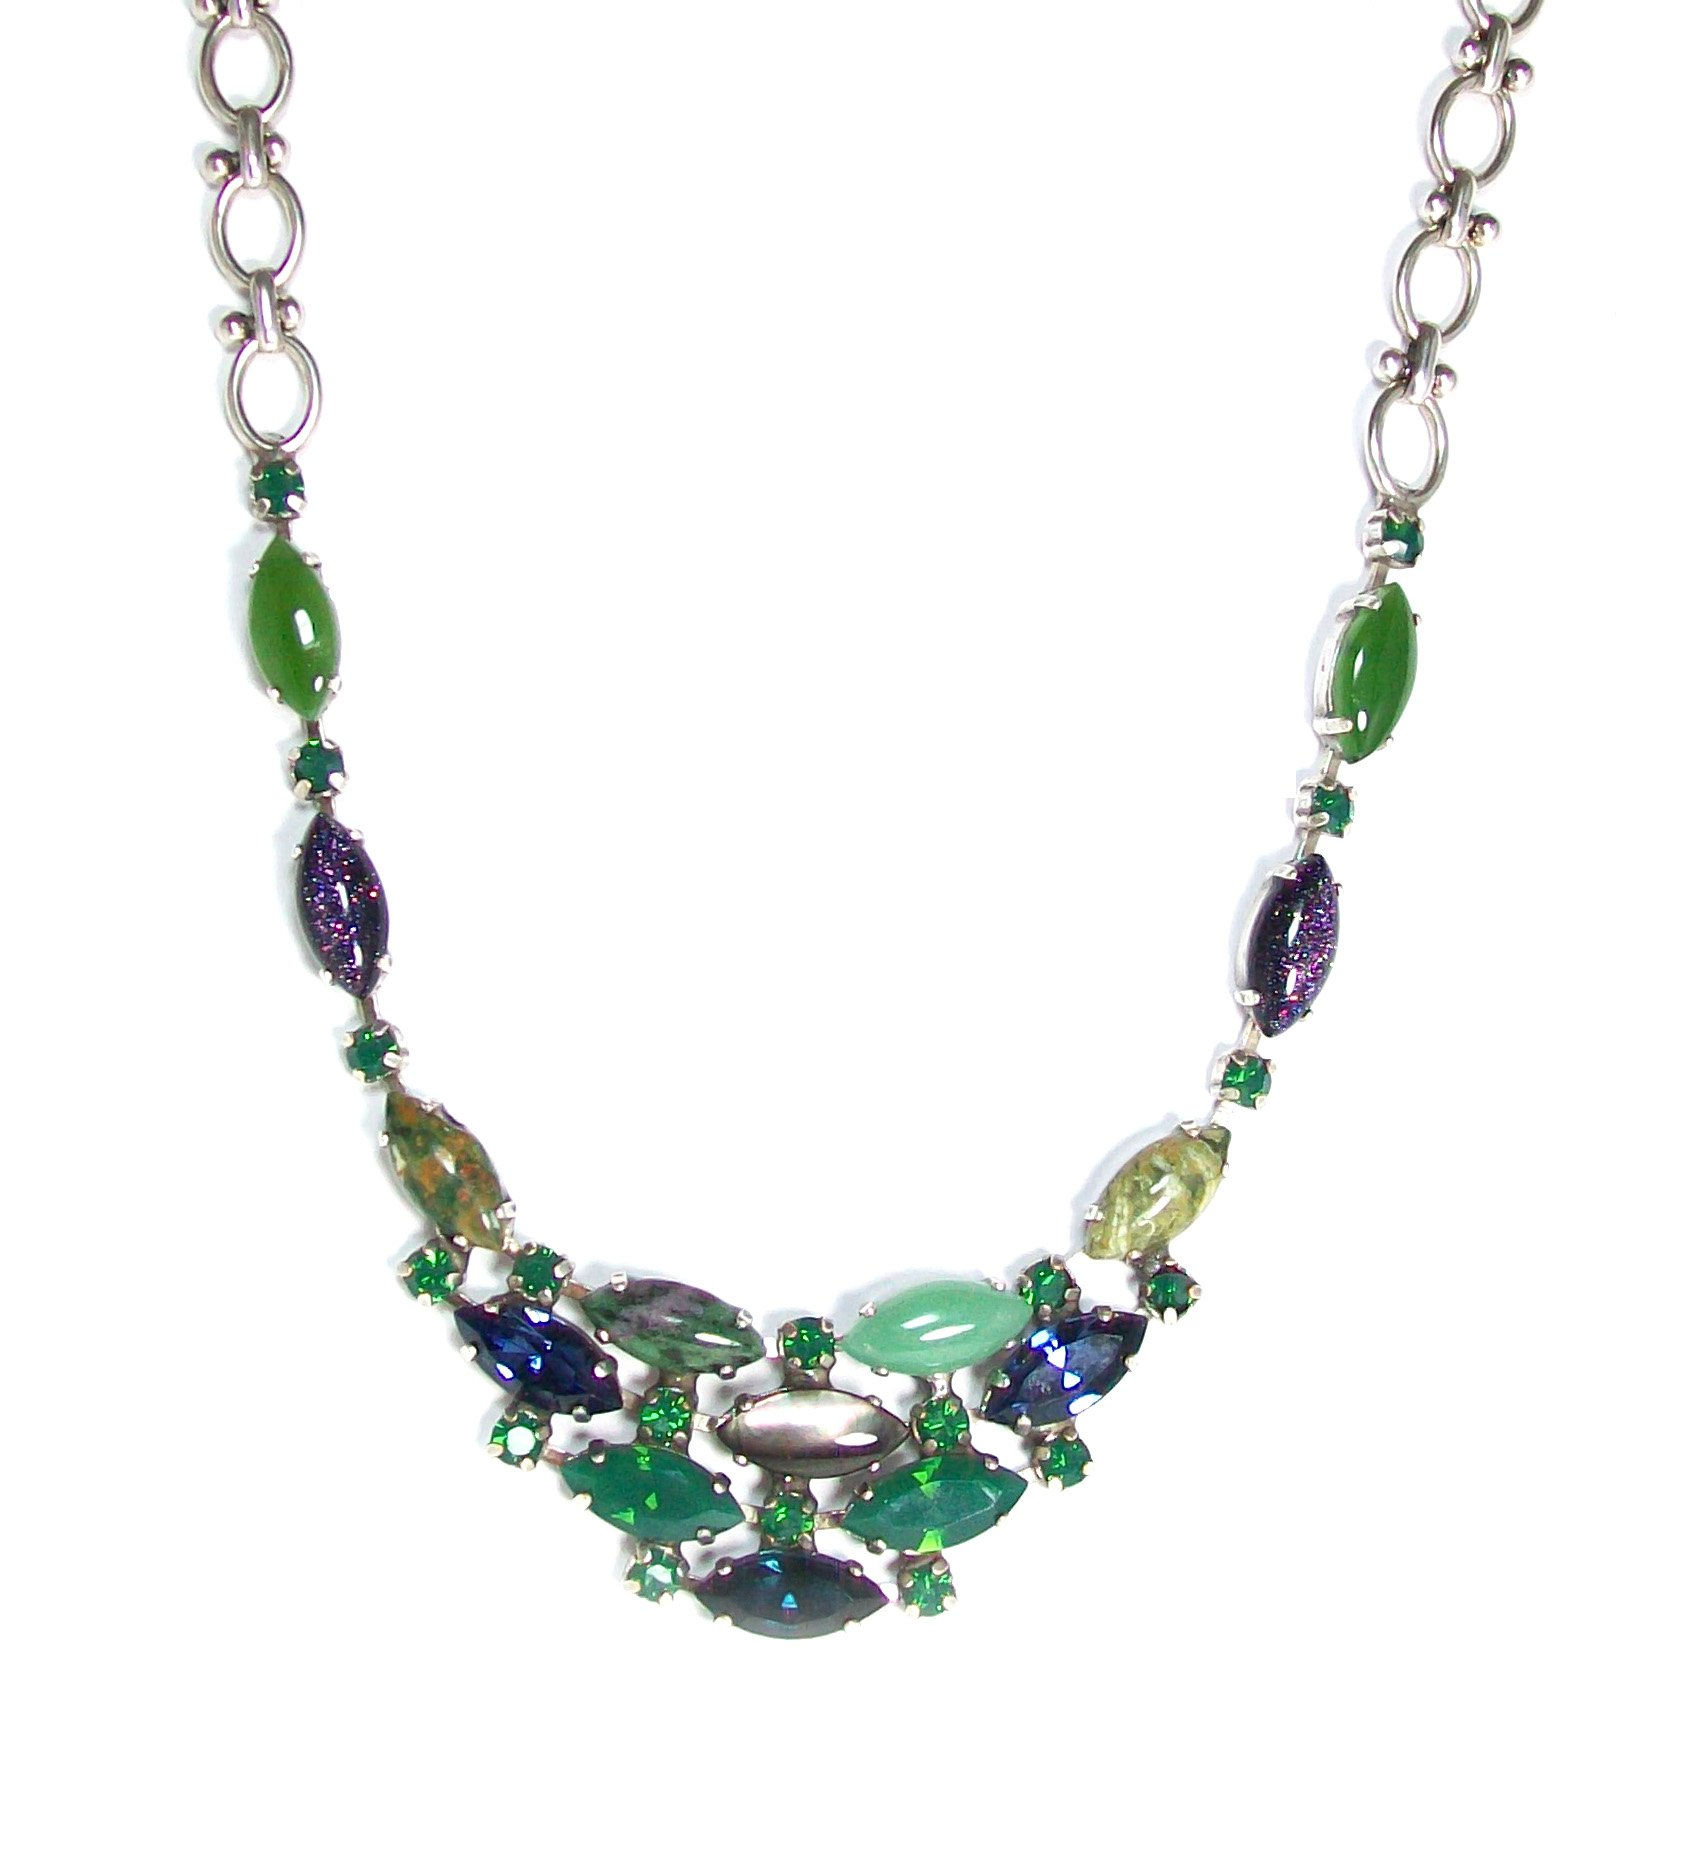 Mariana Antique Silver Plated Swarovski Crystal Collar Necklace, 16+4'' Extender by Mariana